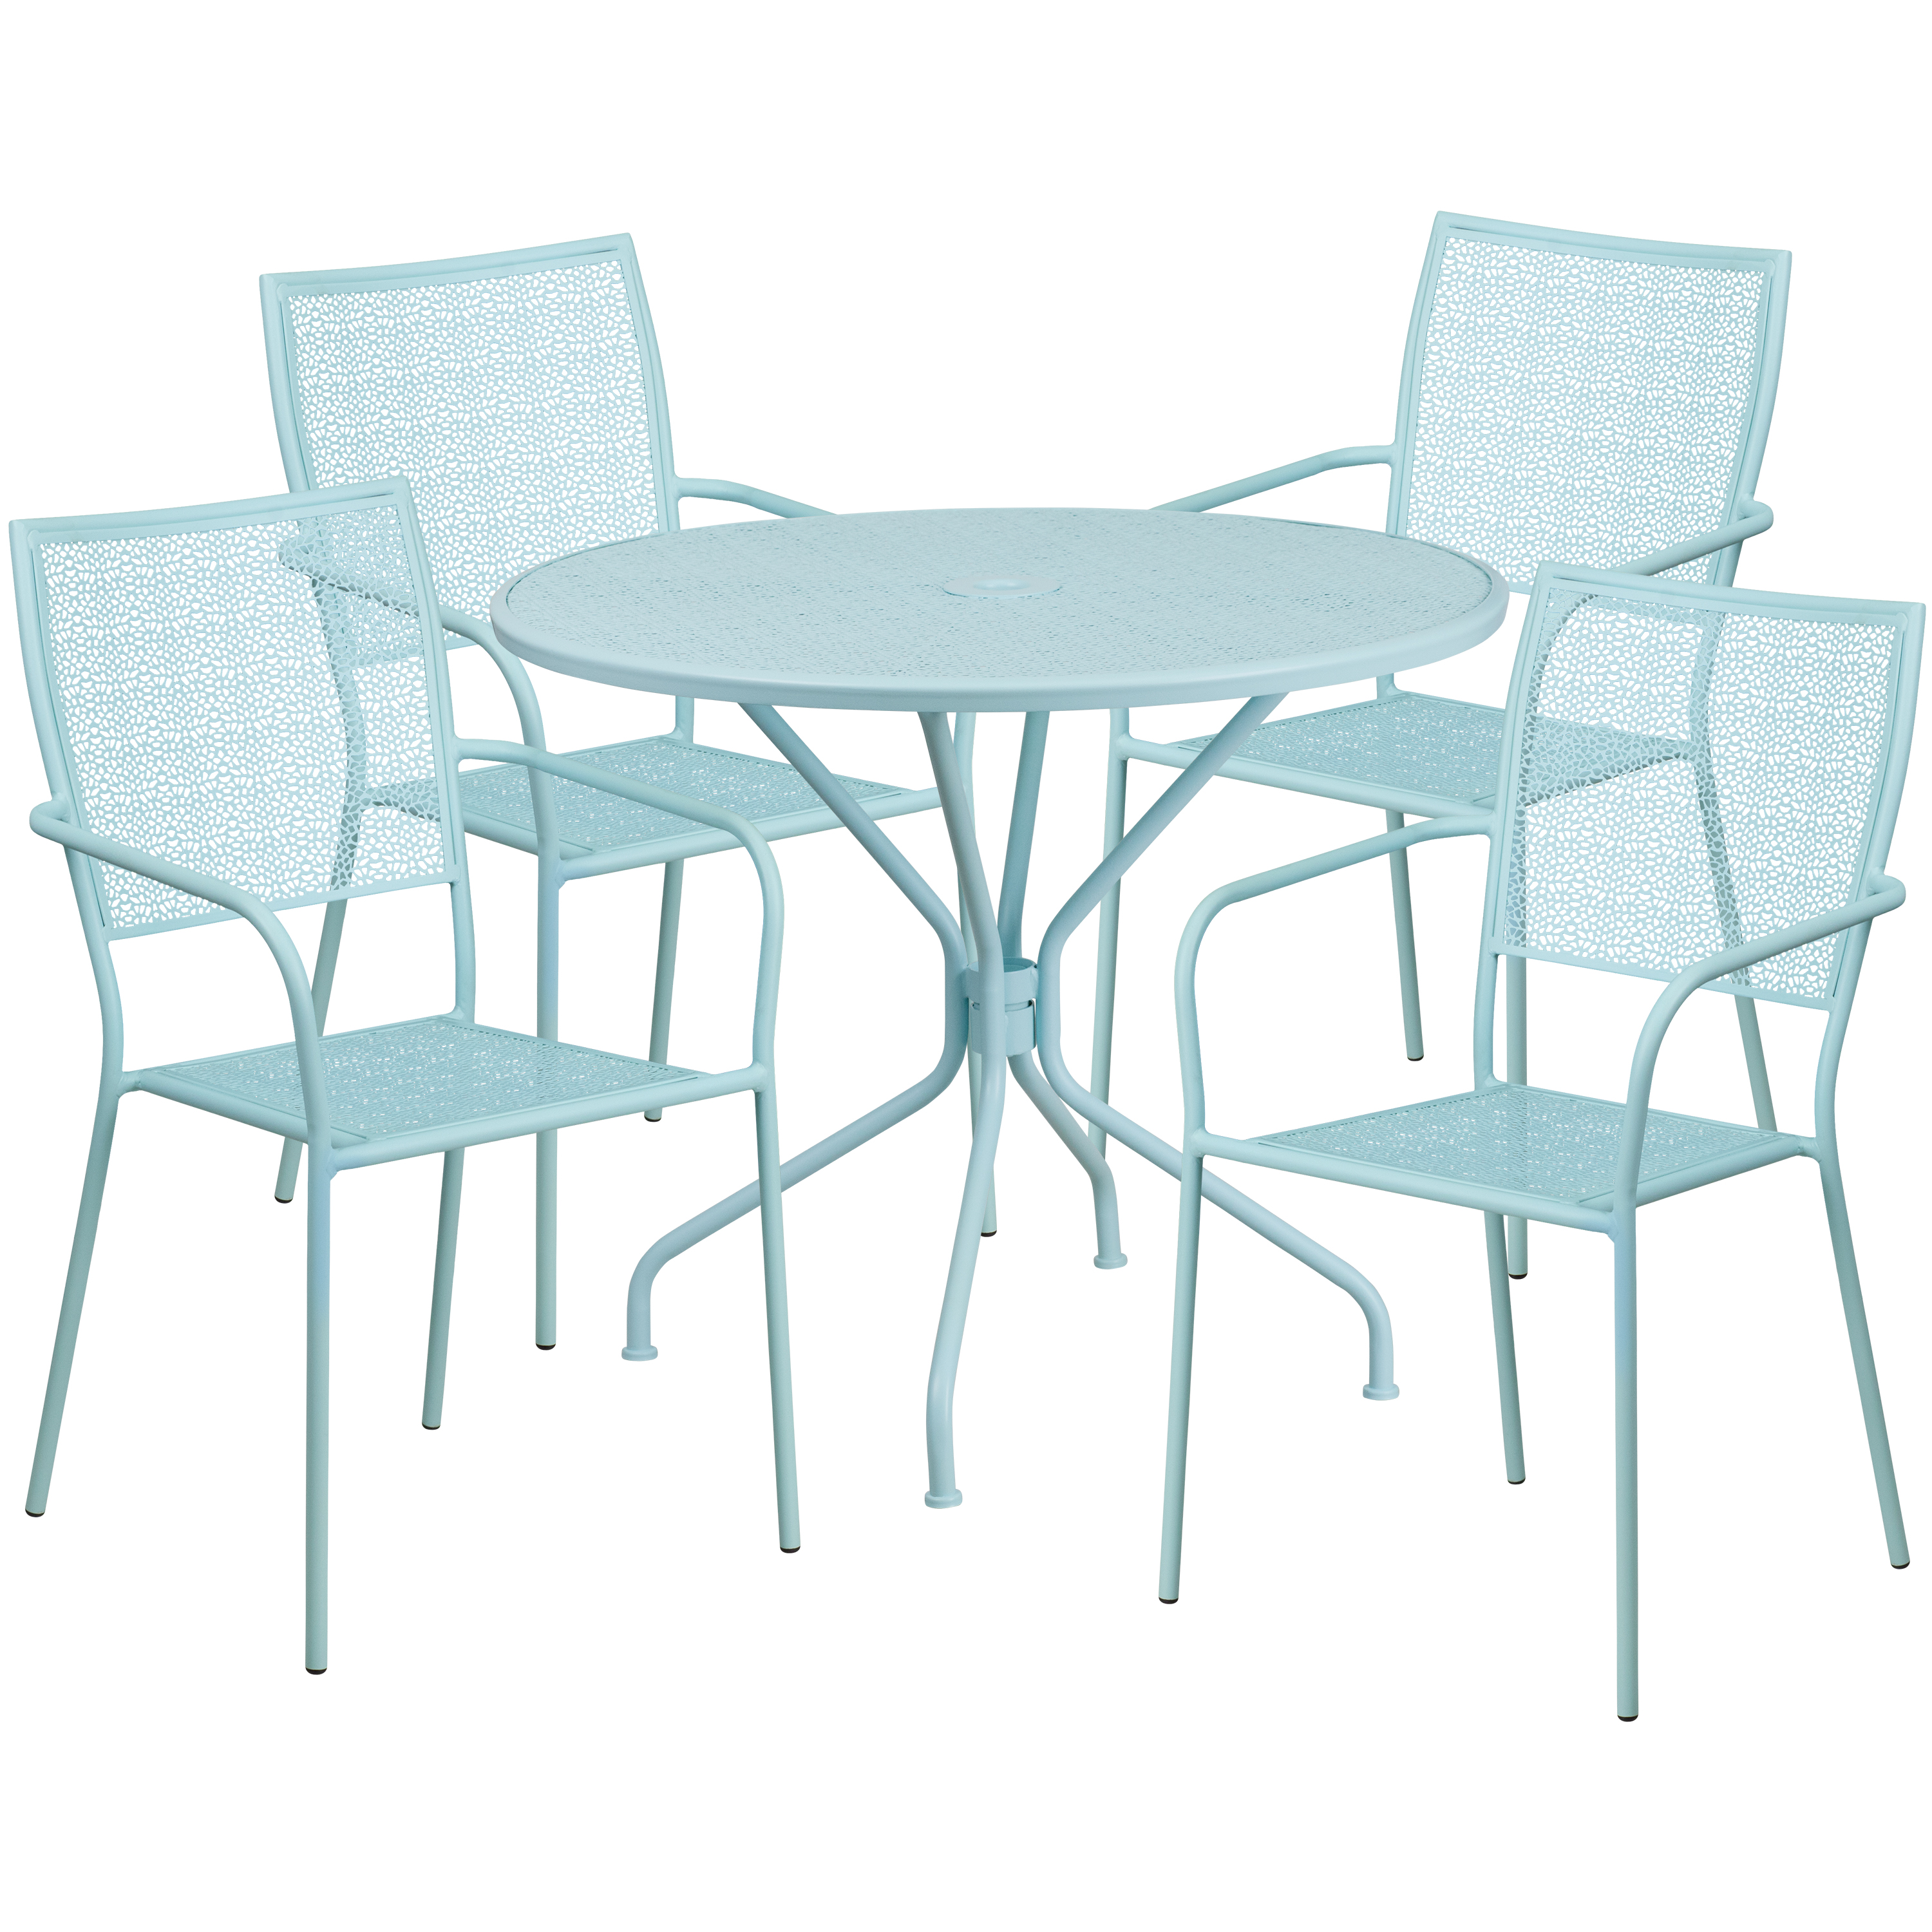 """Flash Furniture 35.25"""" Round Indoor-Outdoor Steel Patio Table Set with 4 Square Back Chairs, Multiple Colors"""